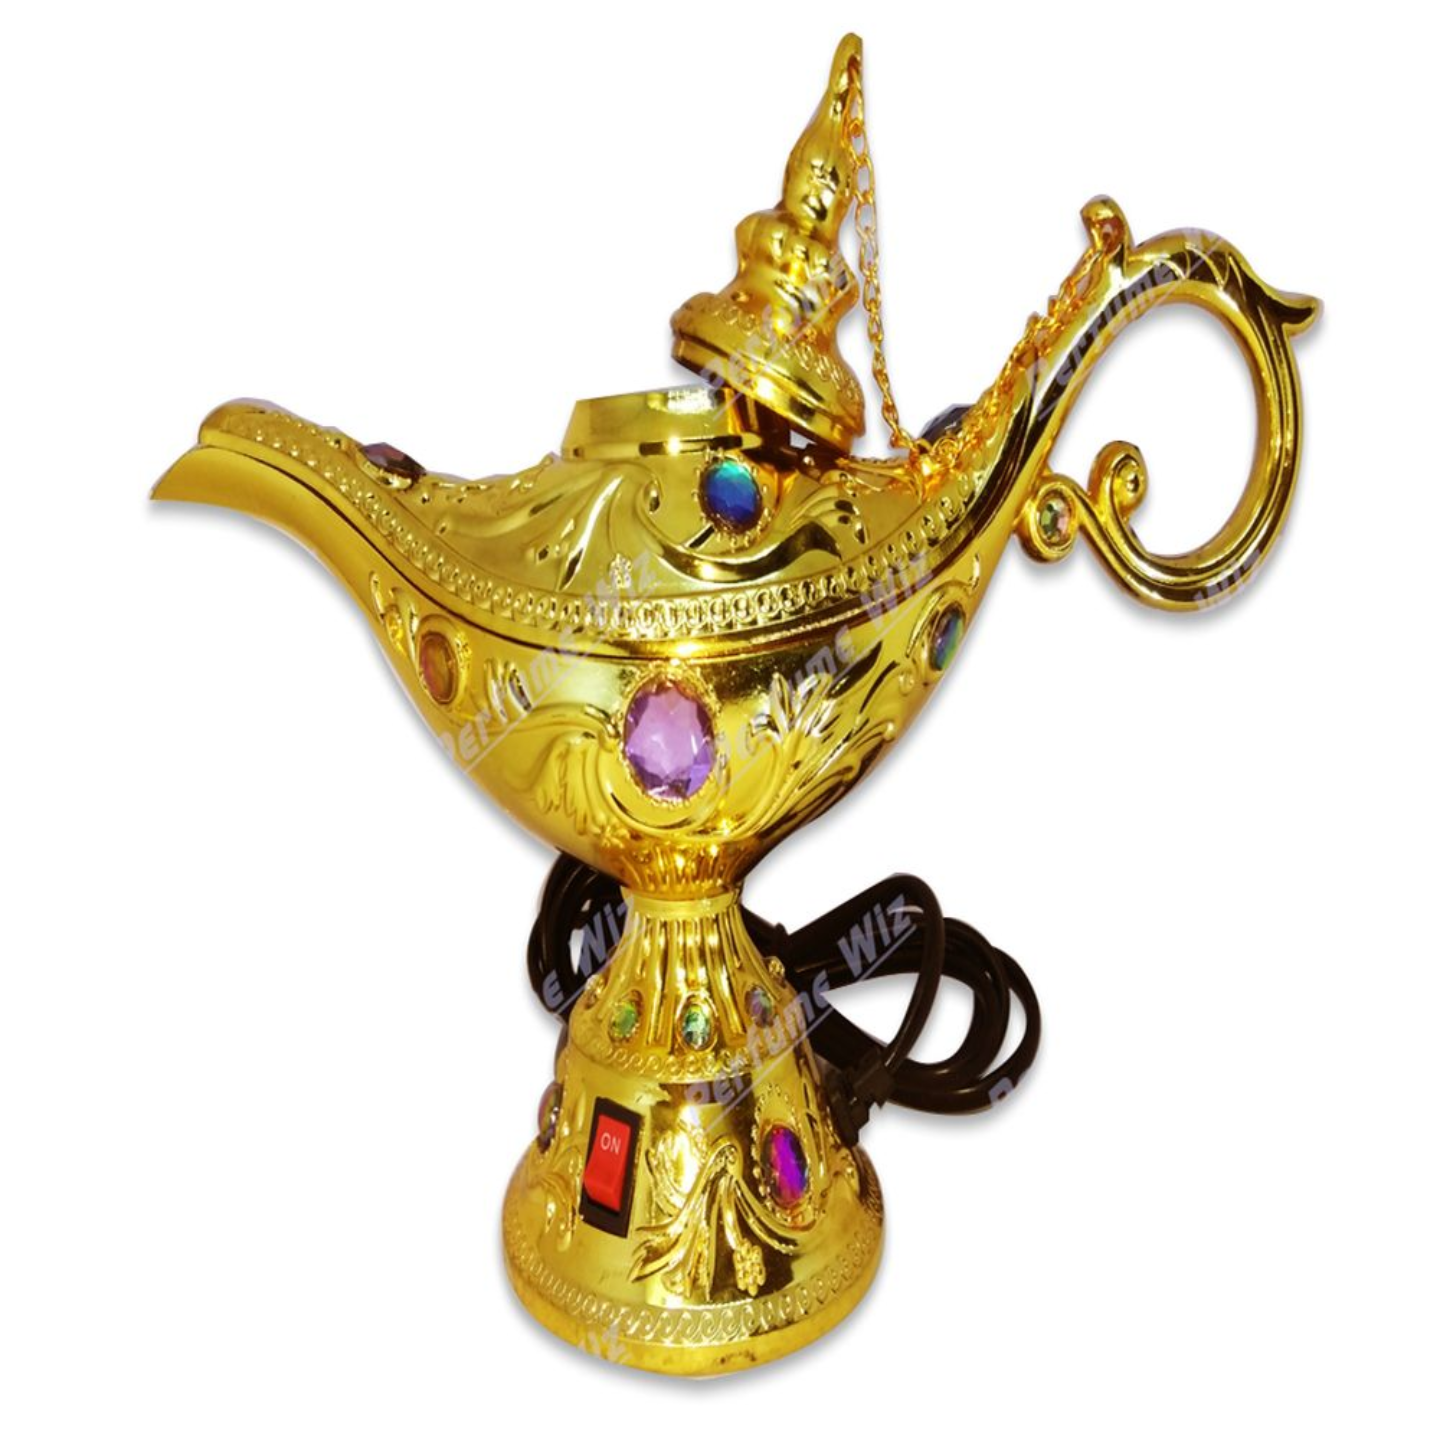 MAGIC LAMP OUD WOOD ELECTRIC INCENSE BURNER  DIFFUSER SUITABLE FOR OUDBAKHOORLOBAN